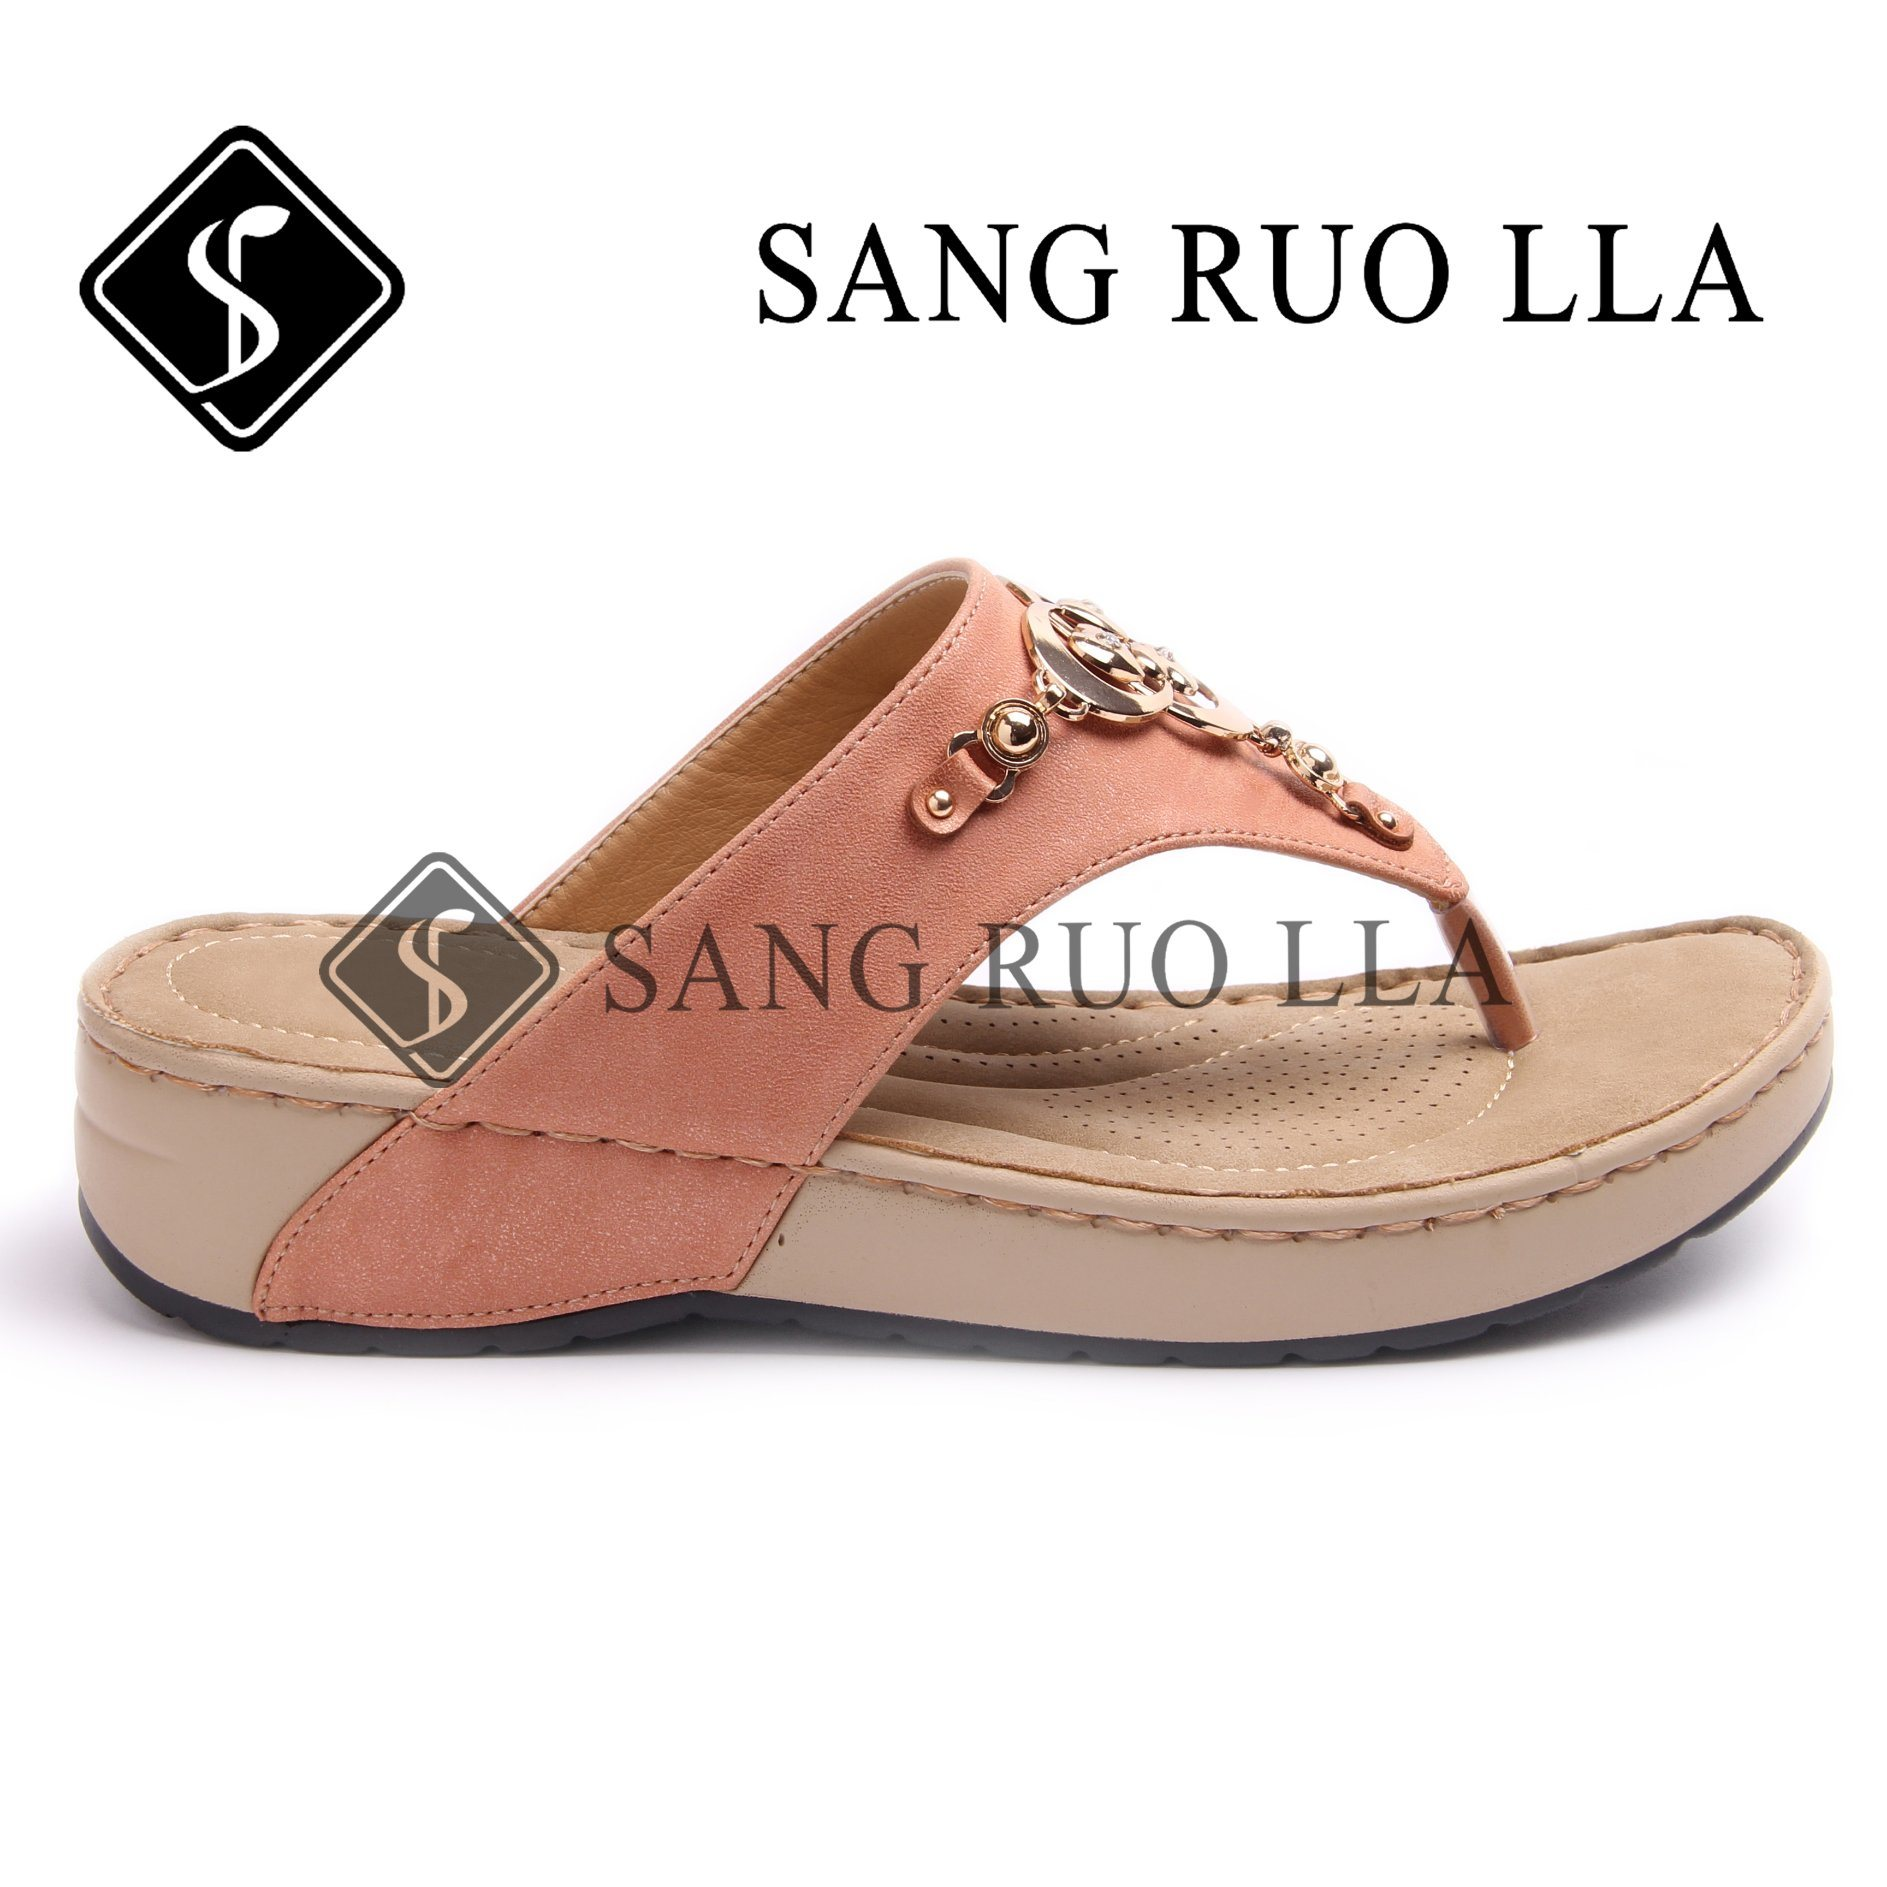 China 2019 New Design Ladies Fashion Flat Slippers Beach Sandal Casual Stylish Shoes Comfortable